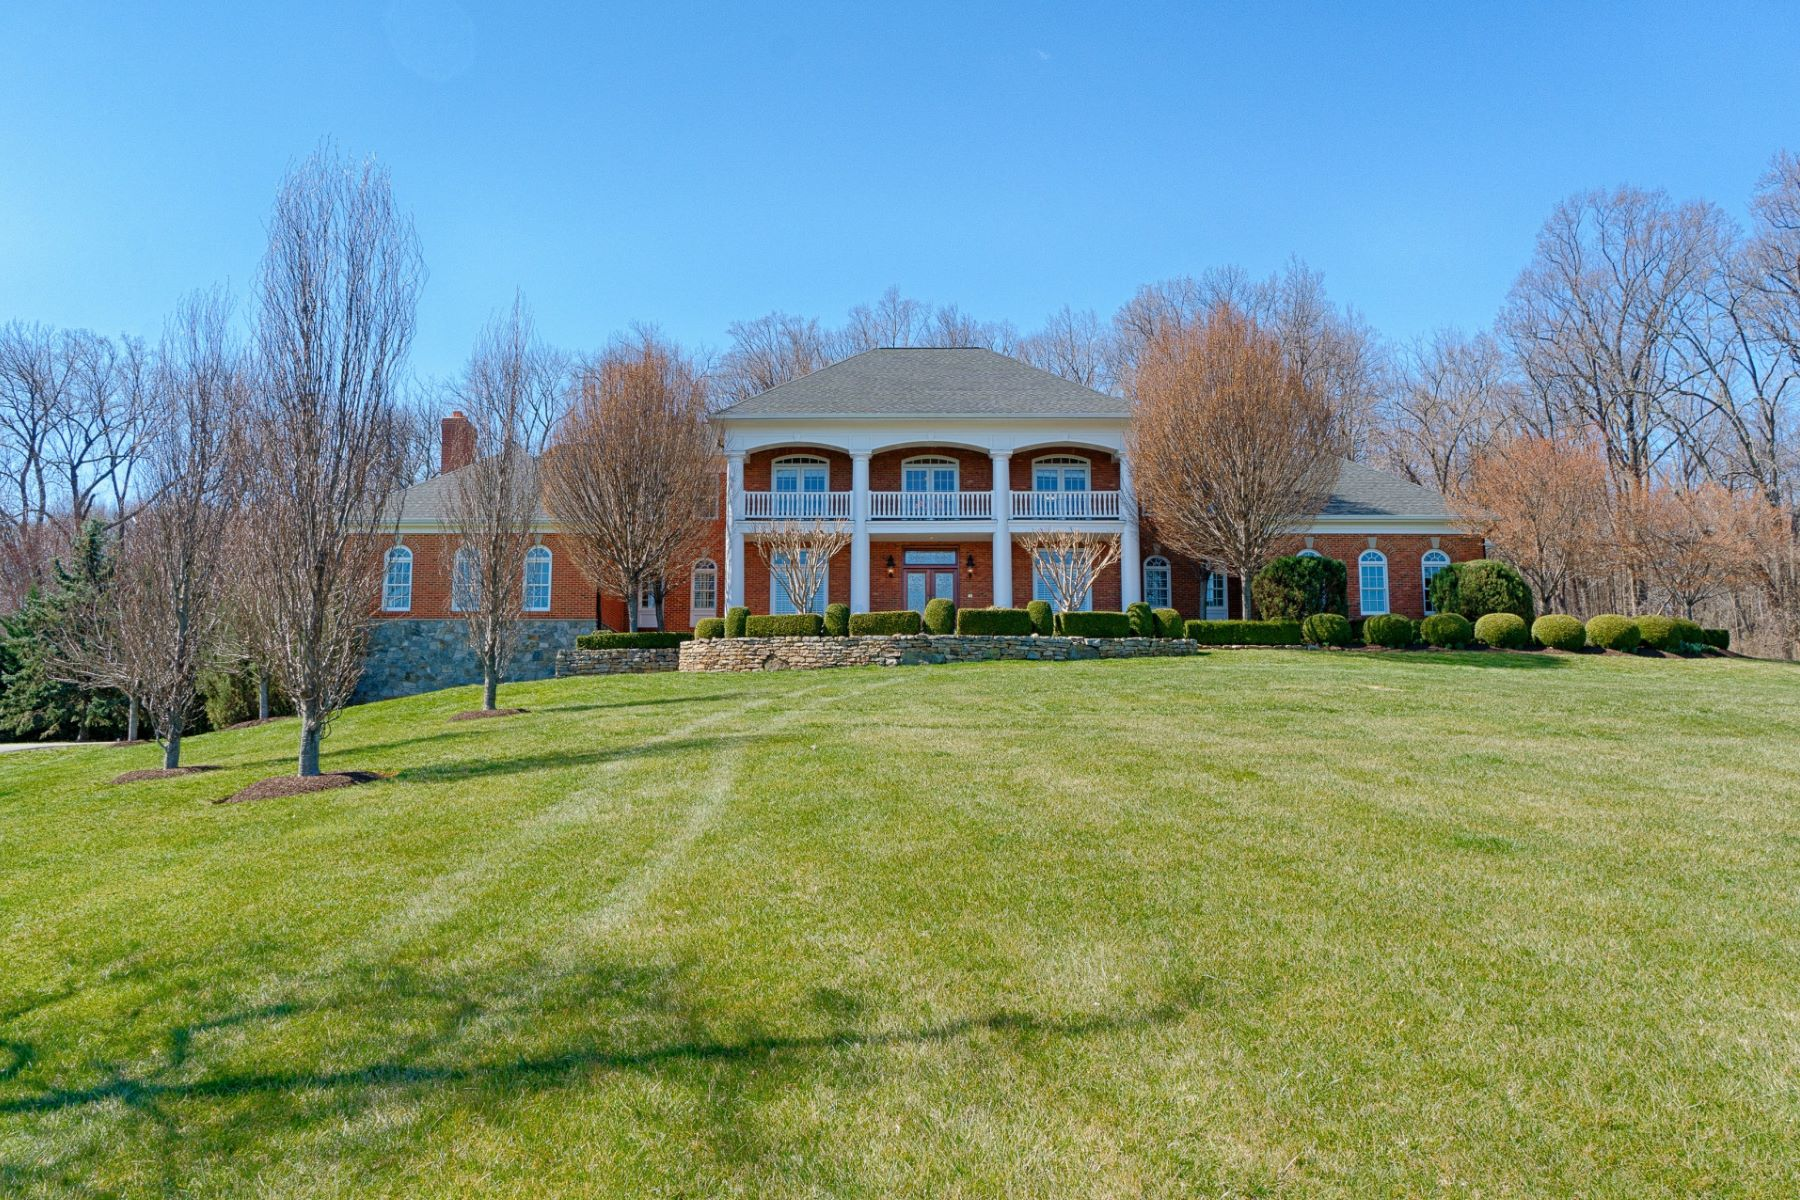 Single Family Home for Sale at Modern Brick Georgian 40573 Spectacular Bid Place Leesburg, Virginia, 20176 United States